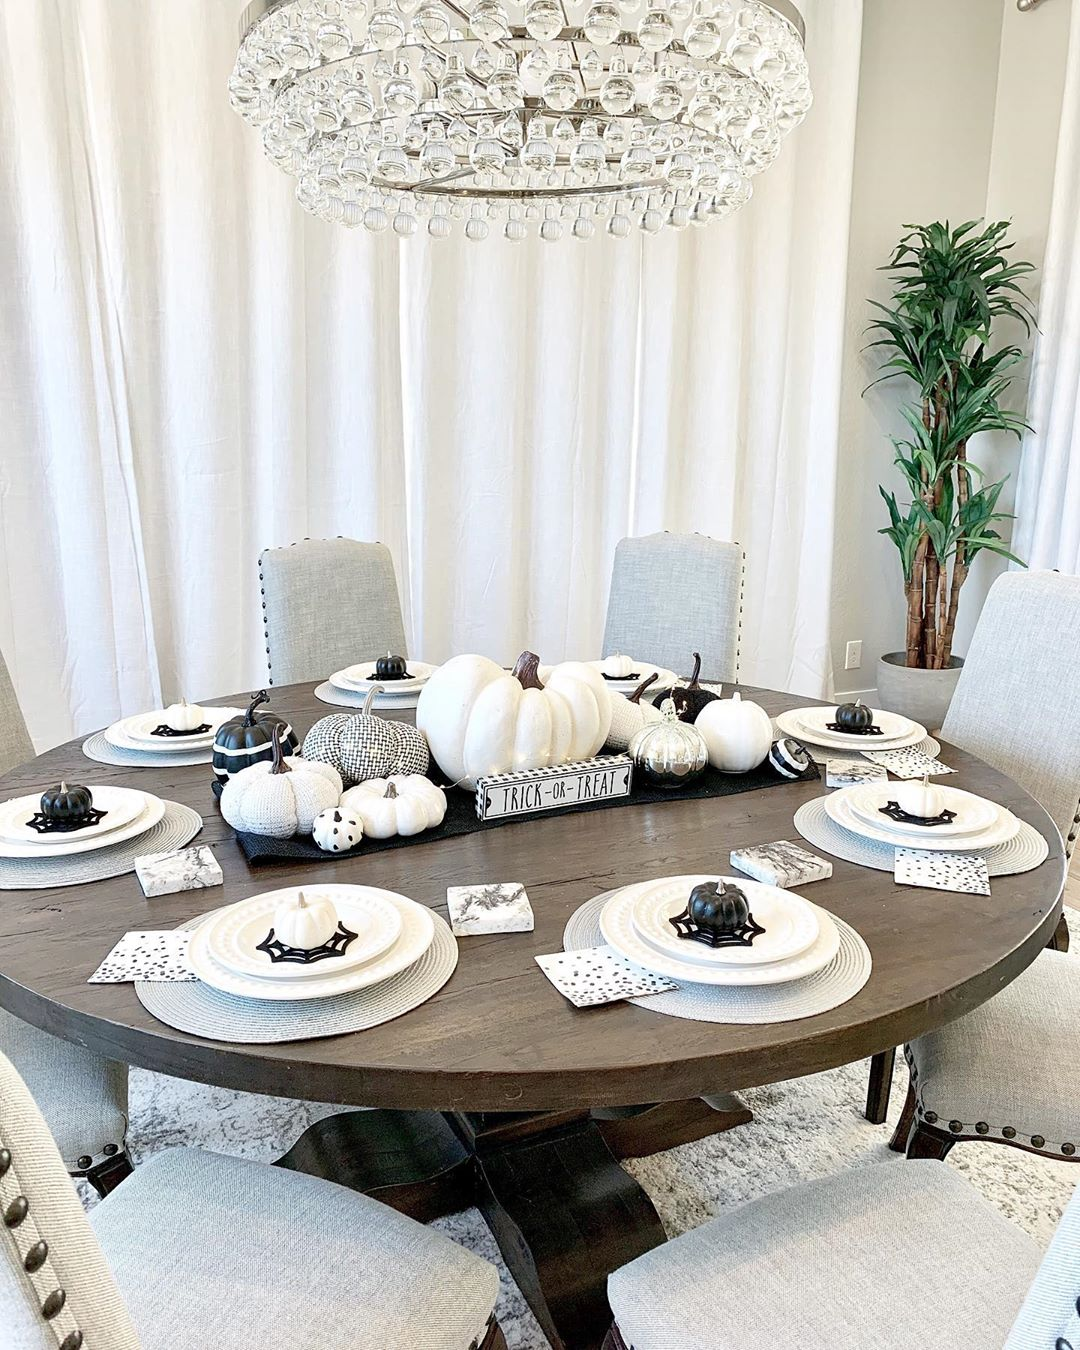 White and Black Halloween Pumpkin Tablescape